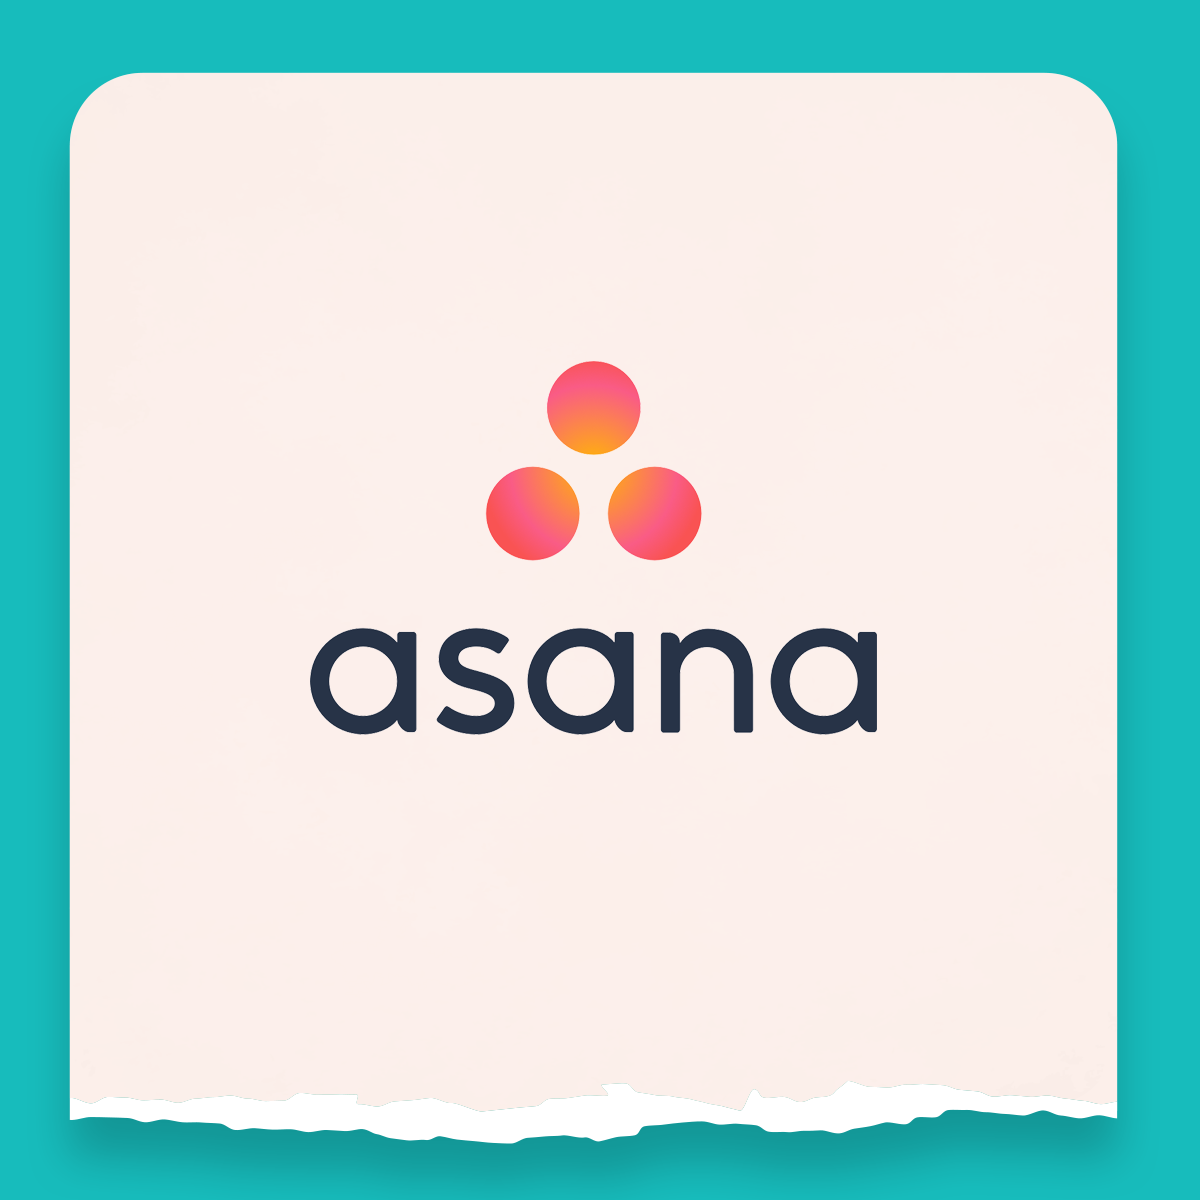 Asana used for: Task Management and Scheduling